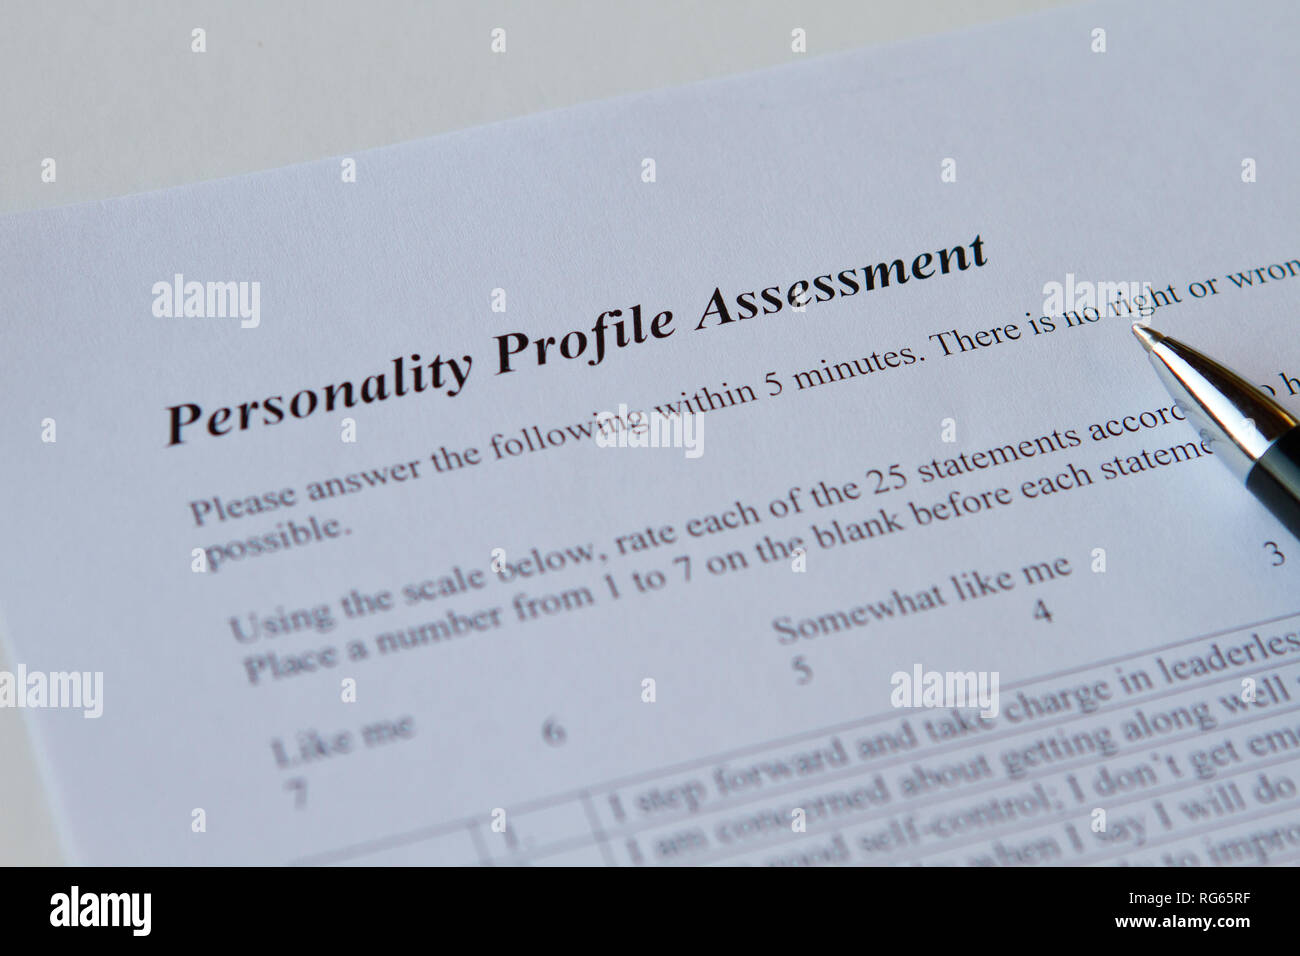 Personality profile assessment - Stock Image